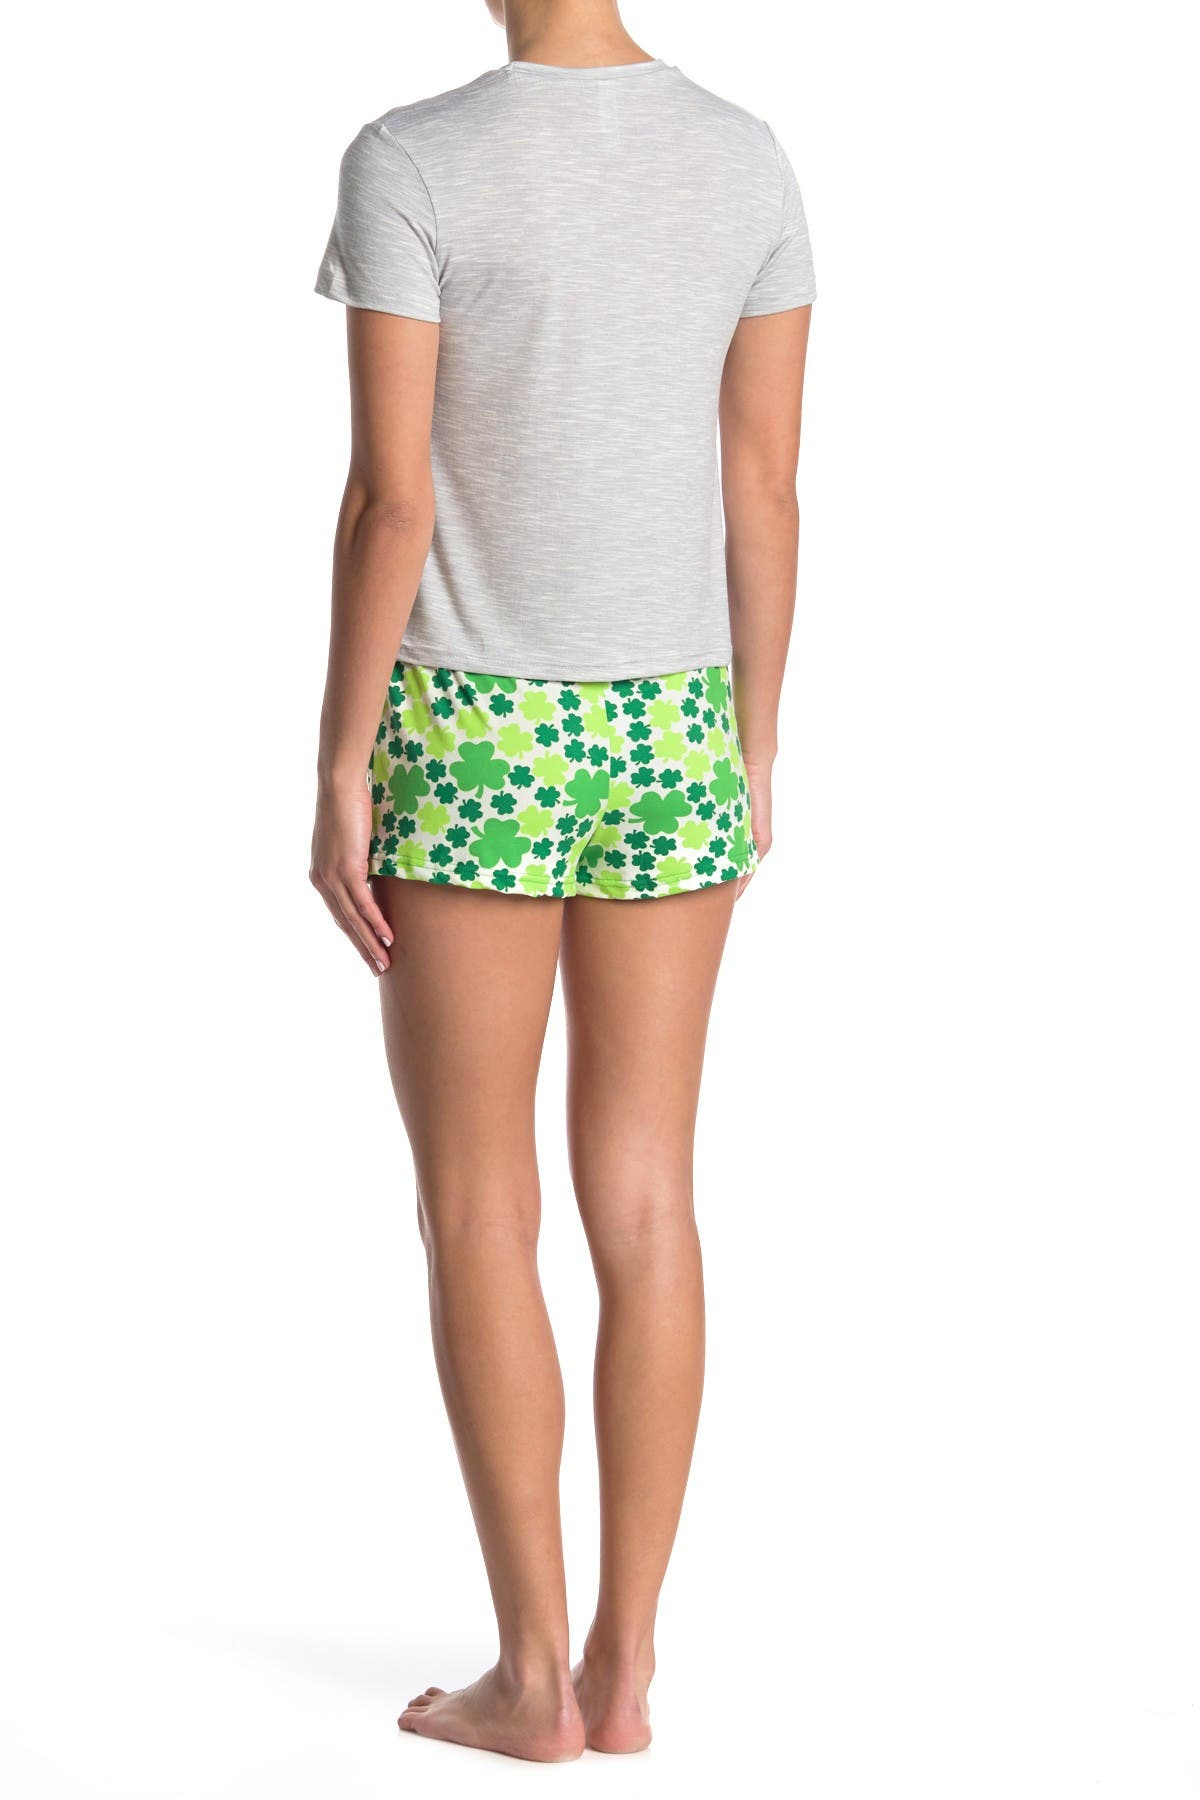 Image of FRENCH AFFAIR Four Leaf Clover Print Short Sleeve T-Shirt & Shorts Pajama 2-Piece Set